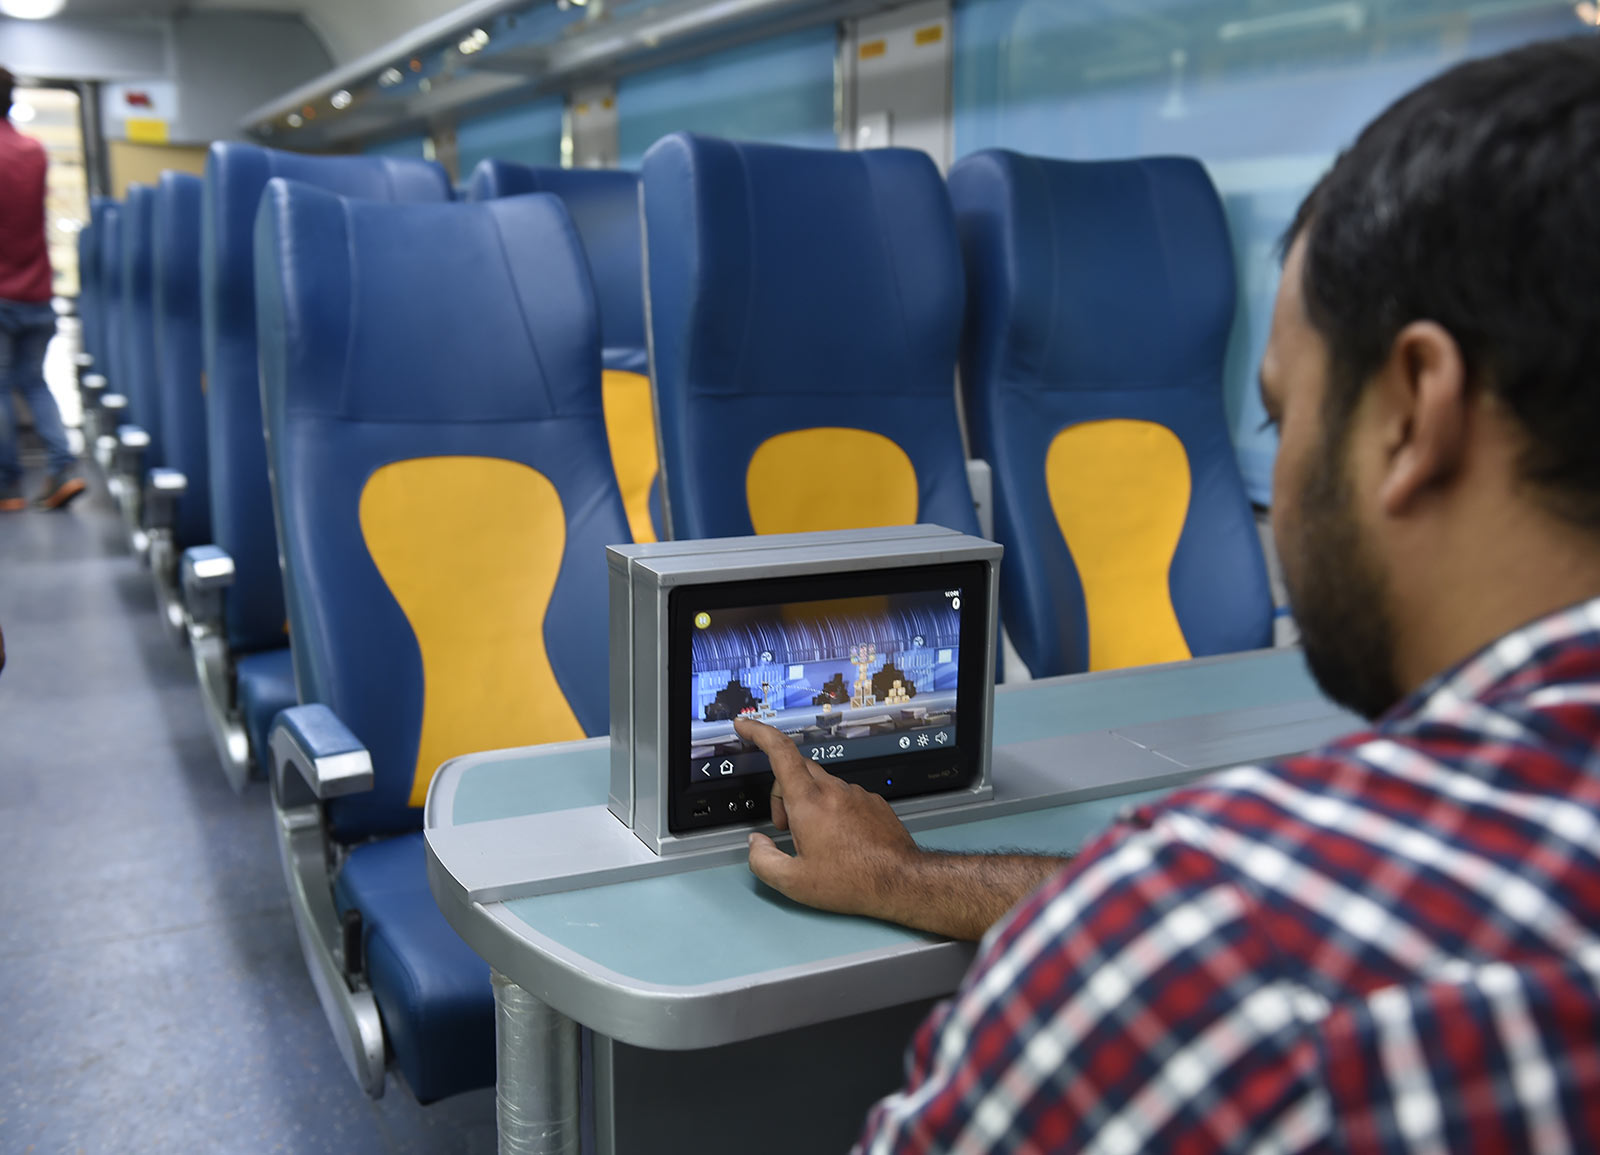 tejas-express-mumbai-to-goa-train-inside